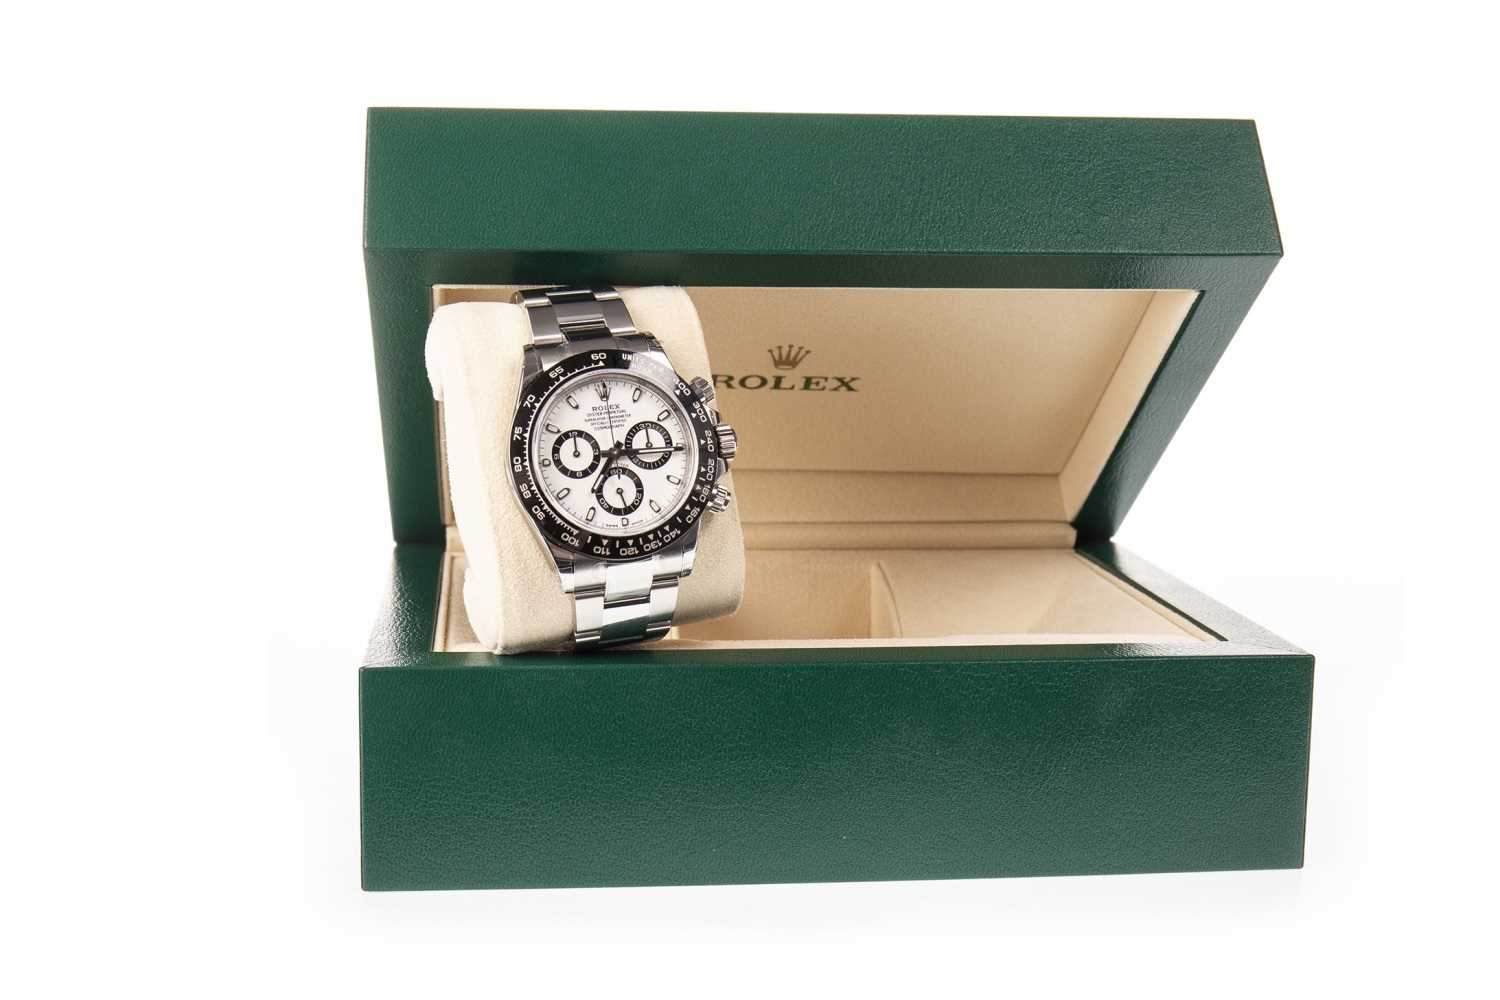 Lot 756-A ROLEX OYSTER PERPETUAL DAYTONA WATCH